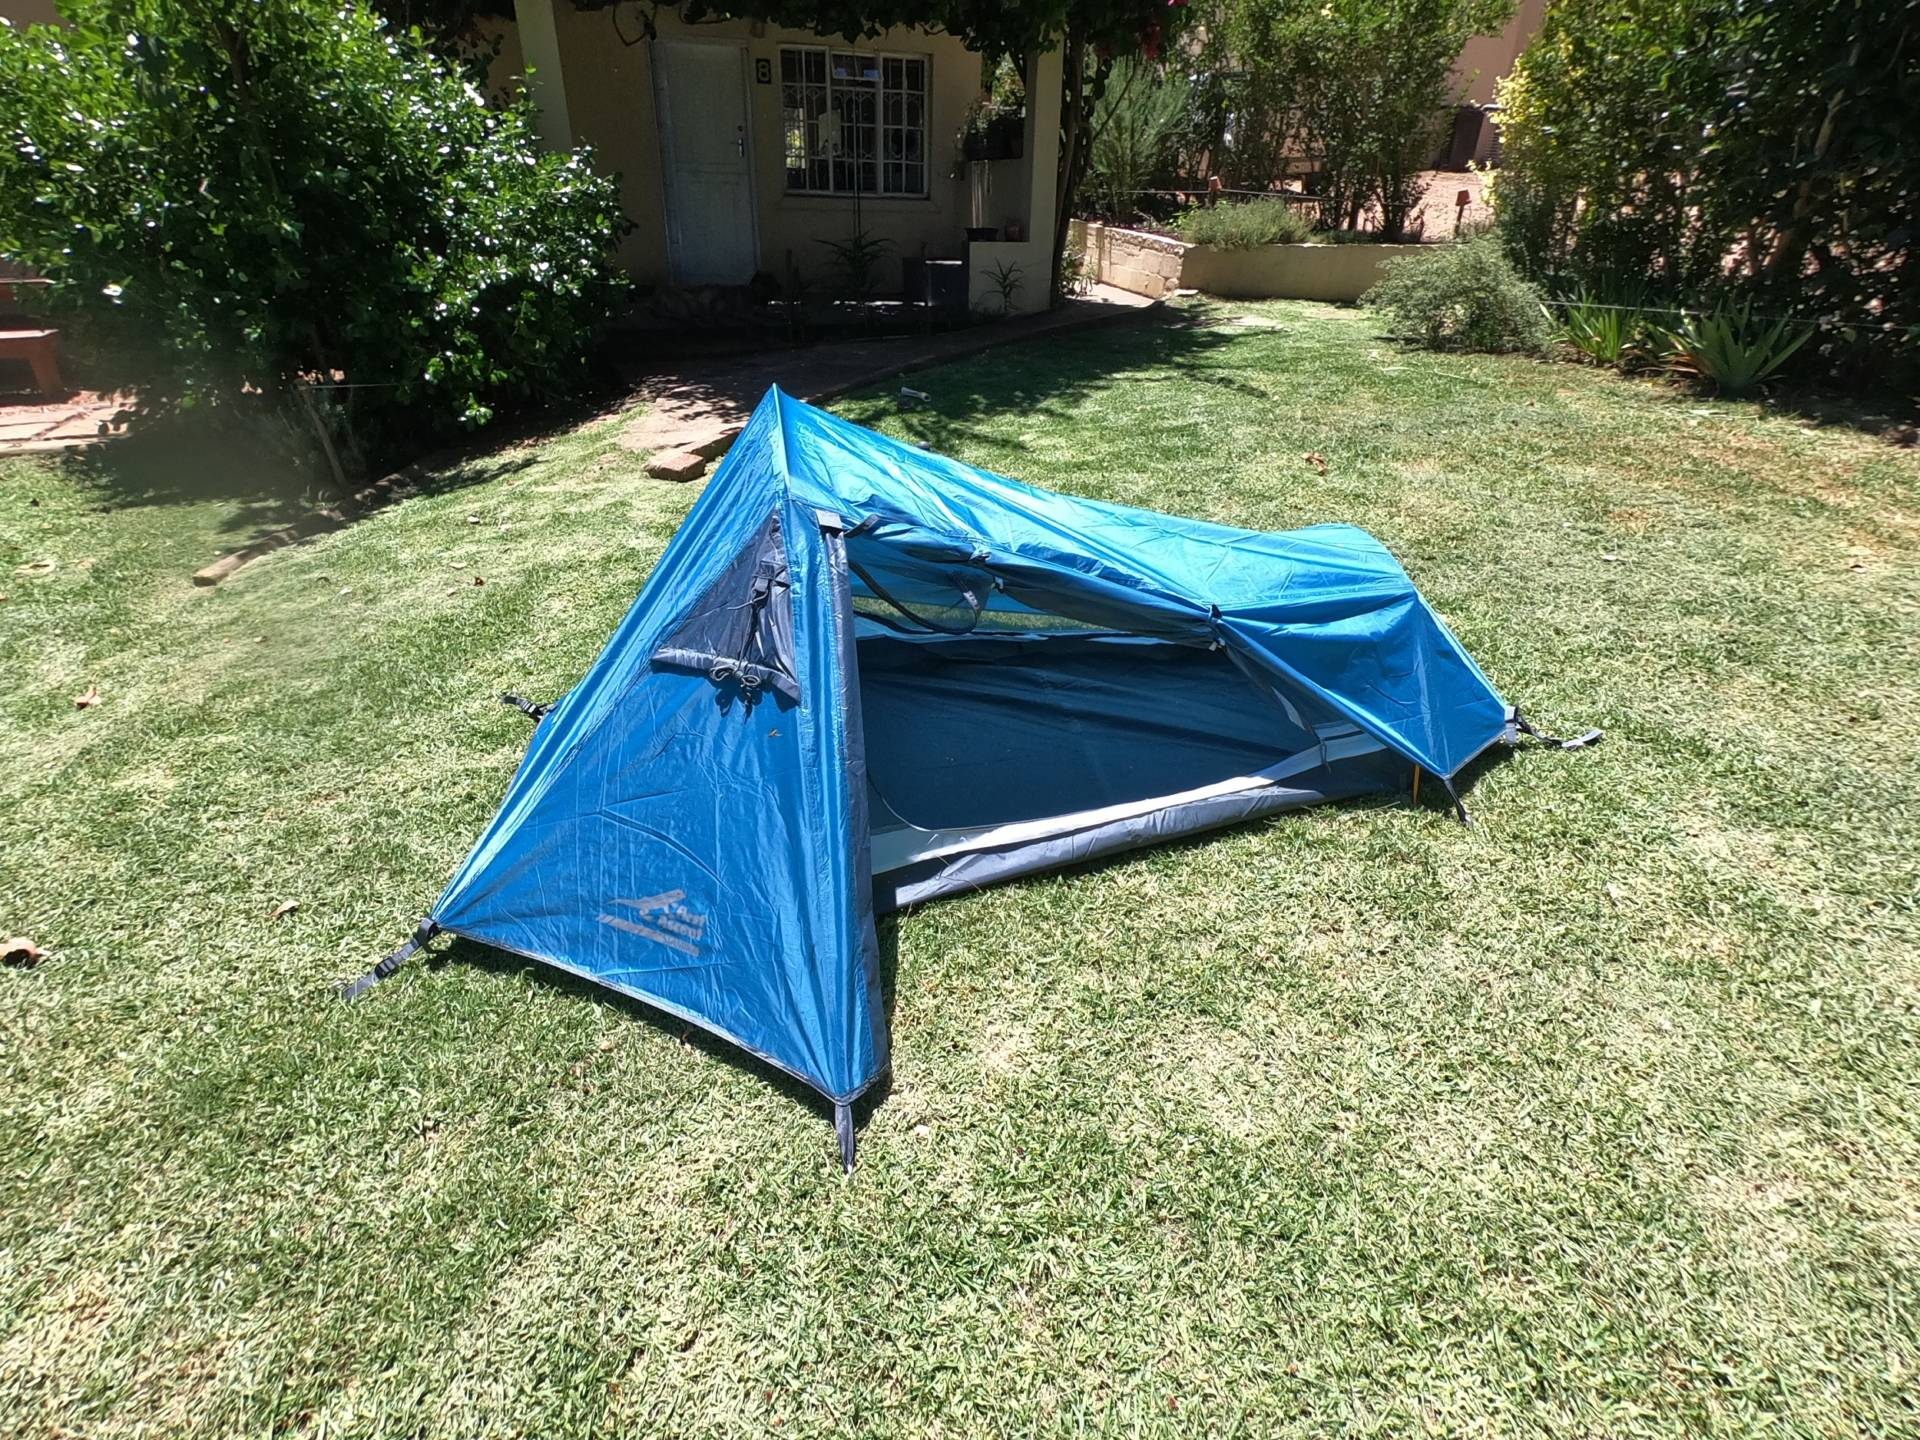 The First Ascent Stamina Tent.